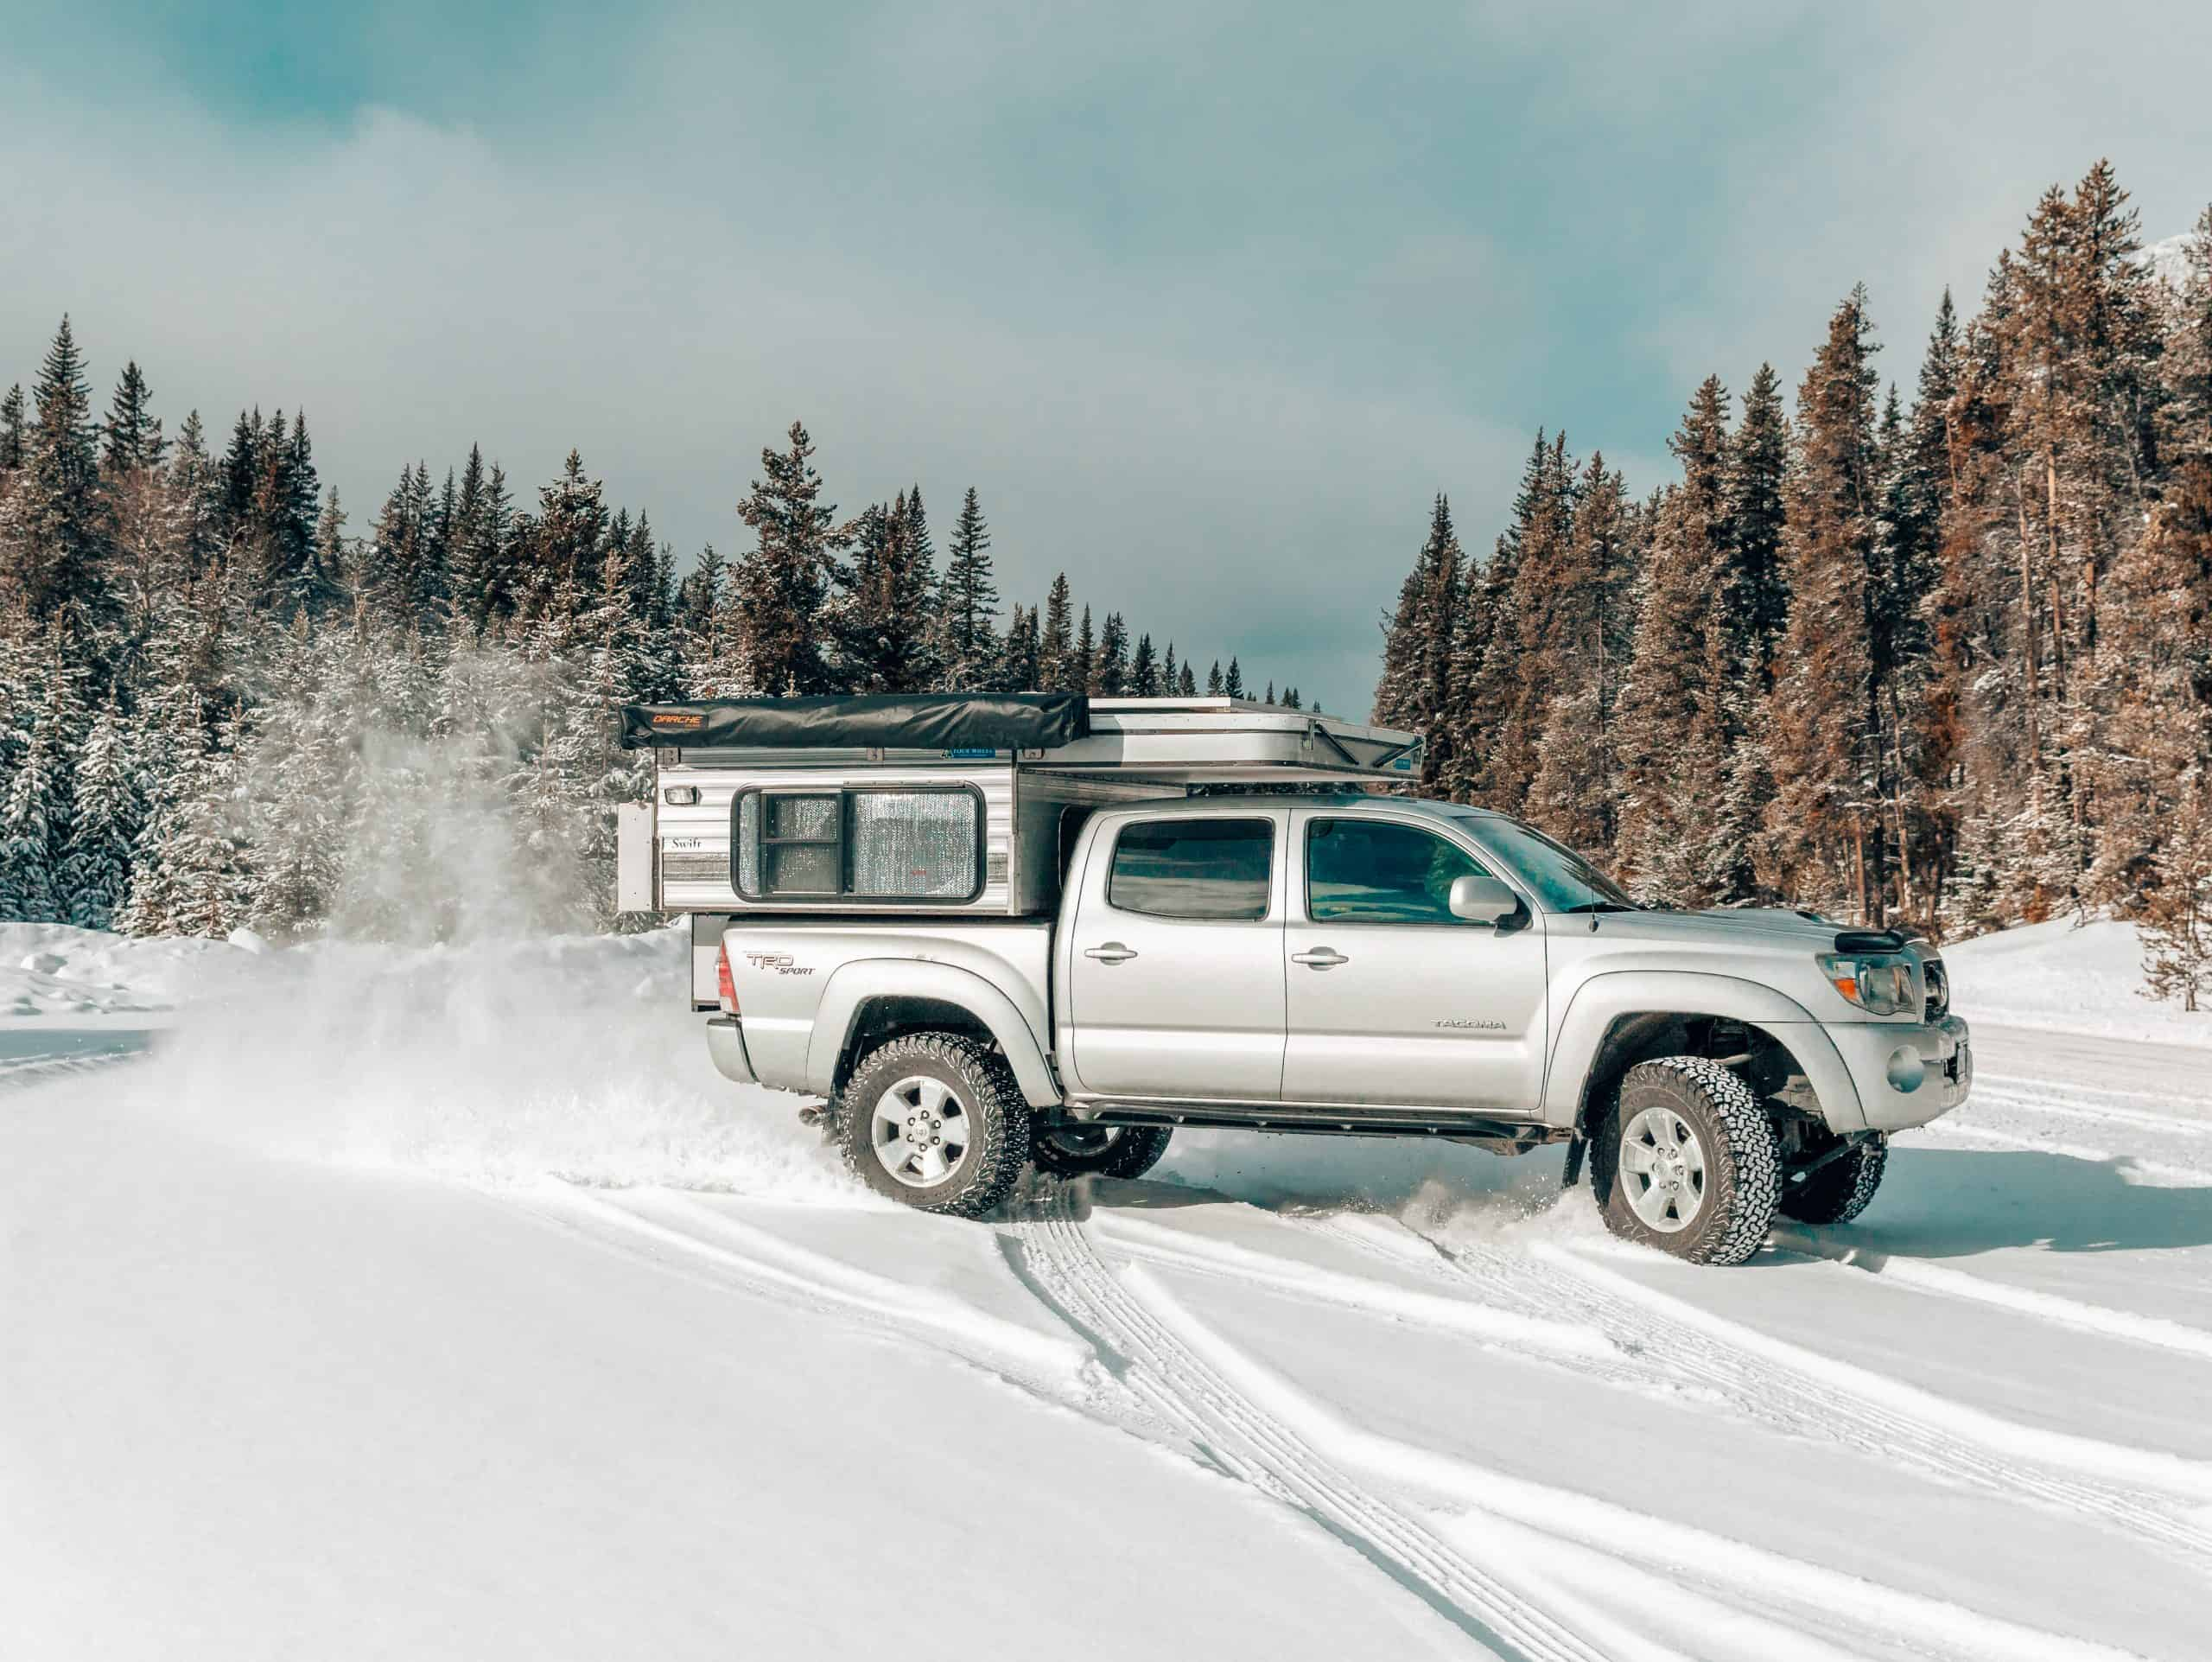 Toyota Tacoma driving in the snow - The Next Trip